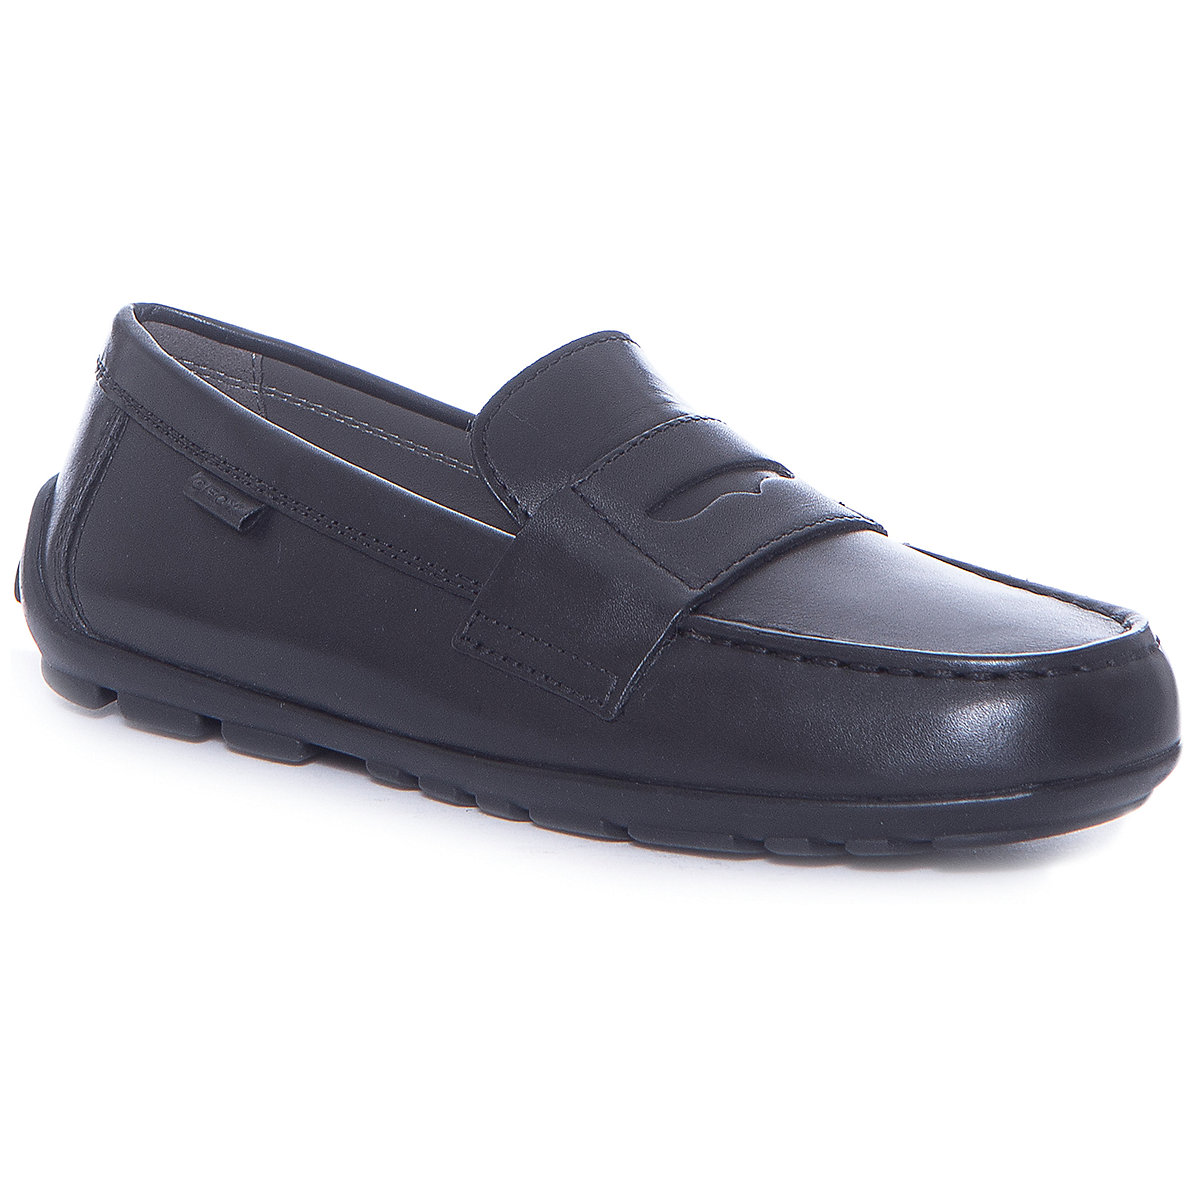 GEOX Children Casual Shoes 8786617 Boys for boy childrens spring/summer Leather school shoes casual middle vamp men leather shoes